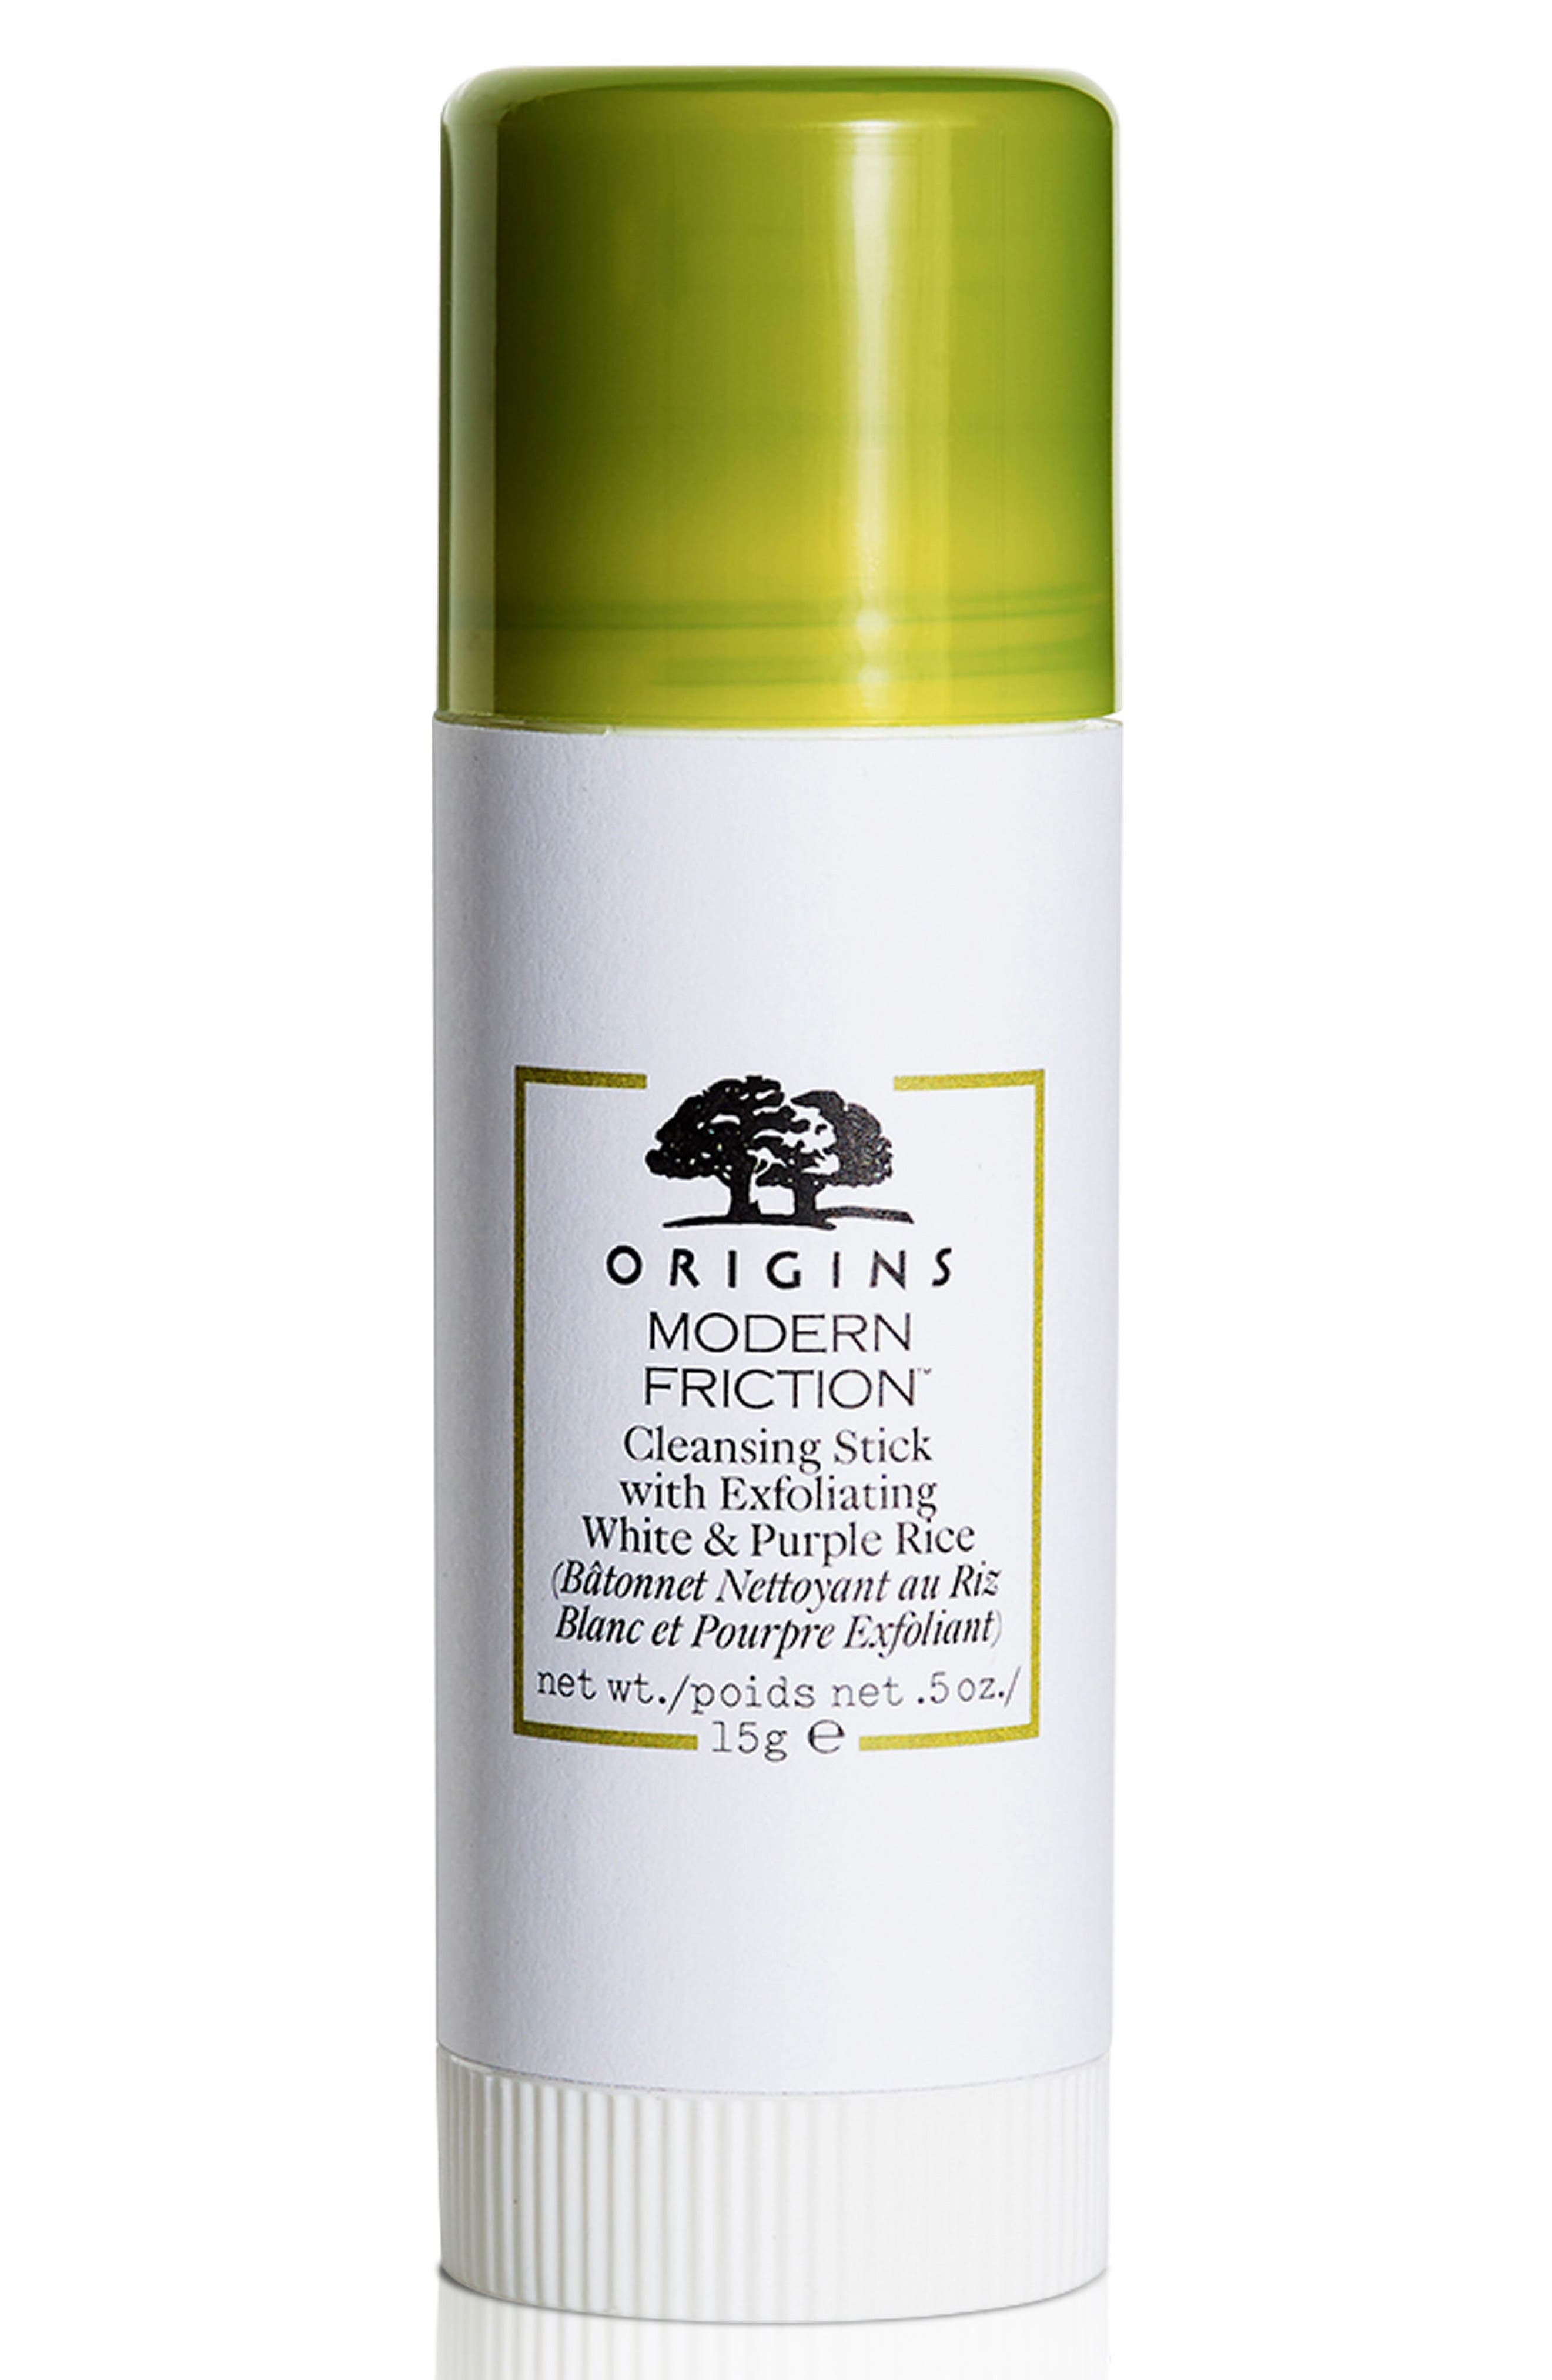 Origins Modern Friction™ Cleansing Stick with Exfoliating White & Purple Rice